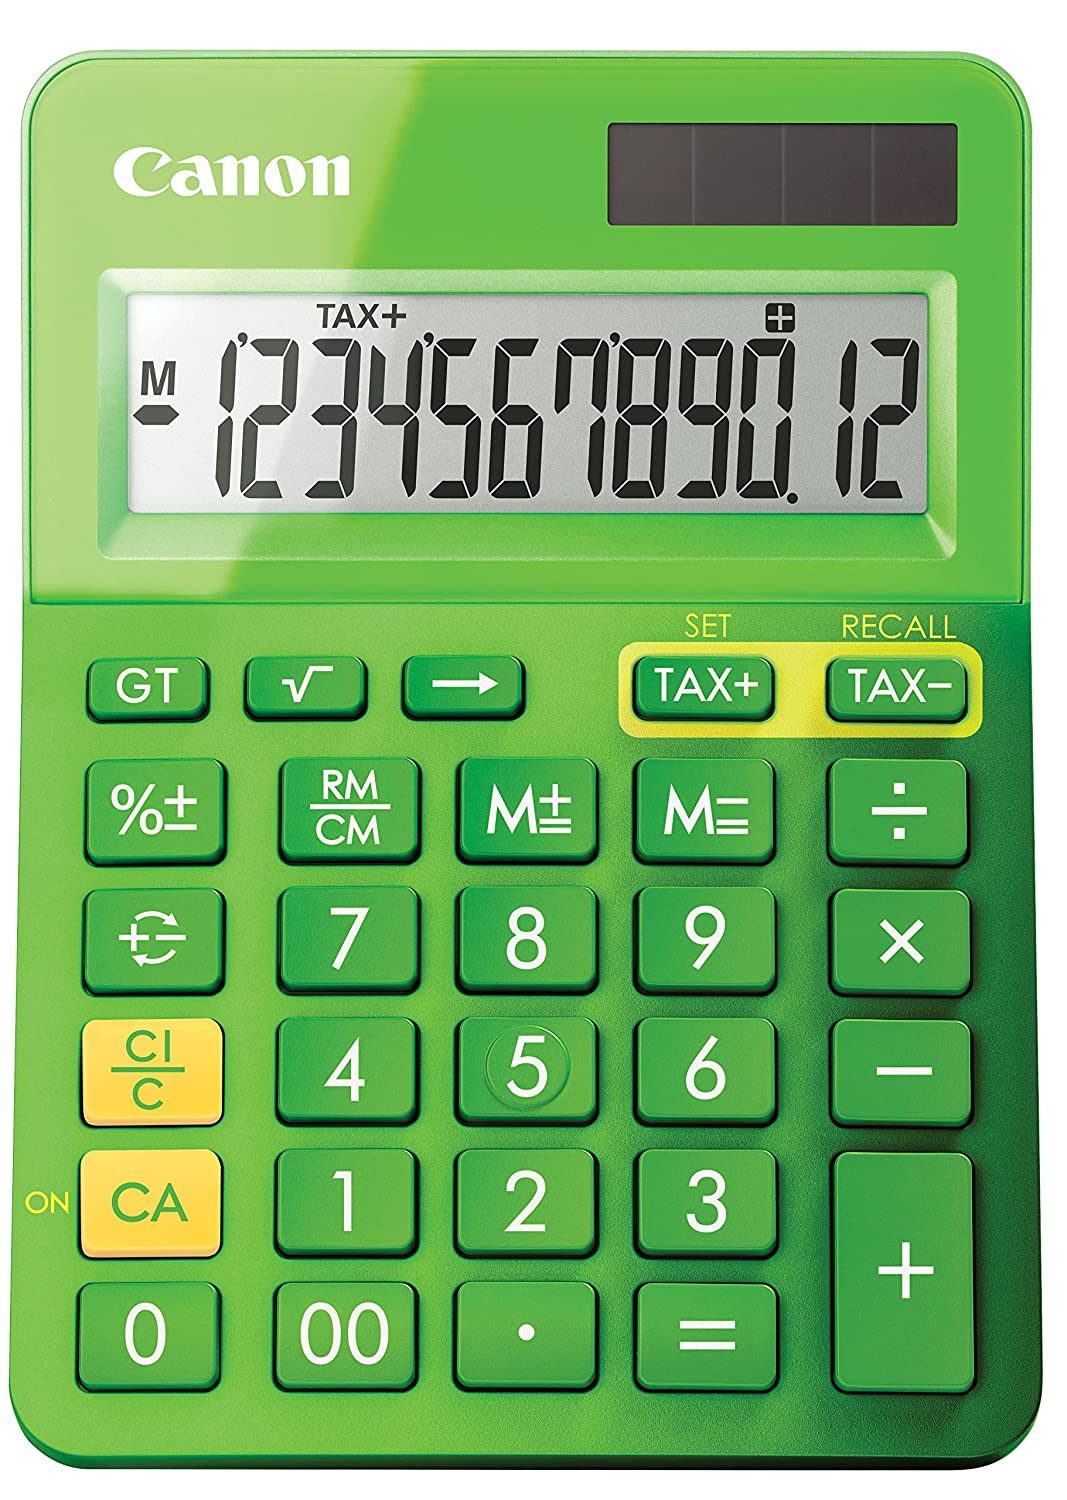 Canon Office Products 9490B018 Canon LS-123K Desktop Basic Calculator, Metallic Pink CANON(R) CANE9 - pallet ordering